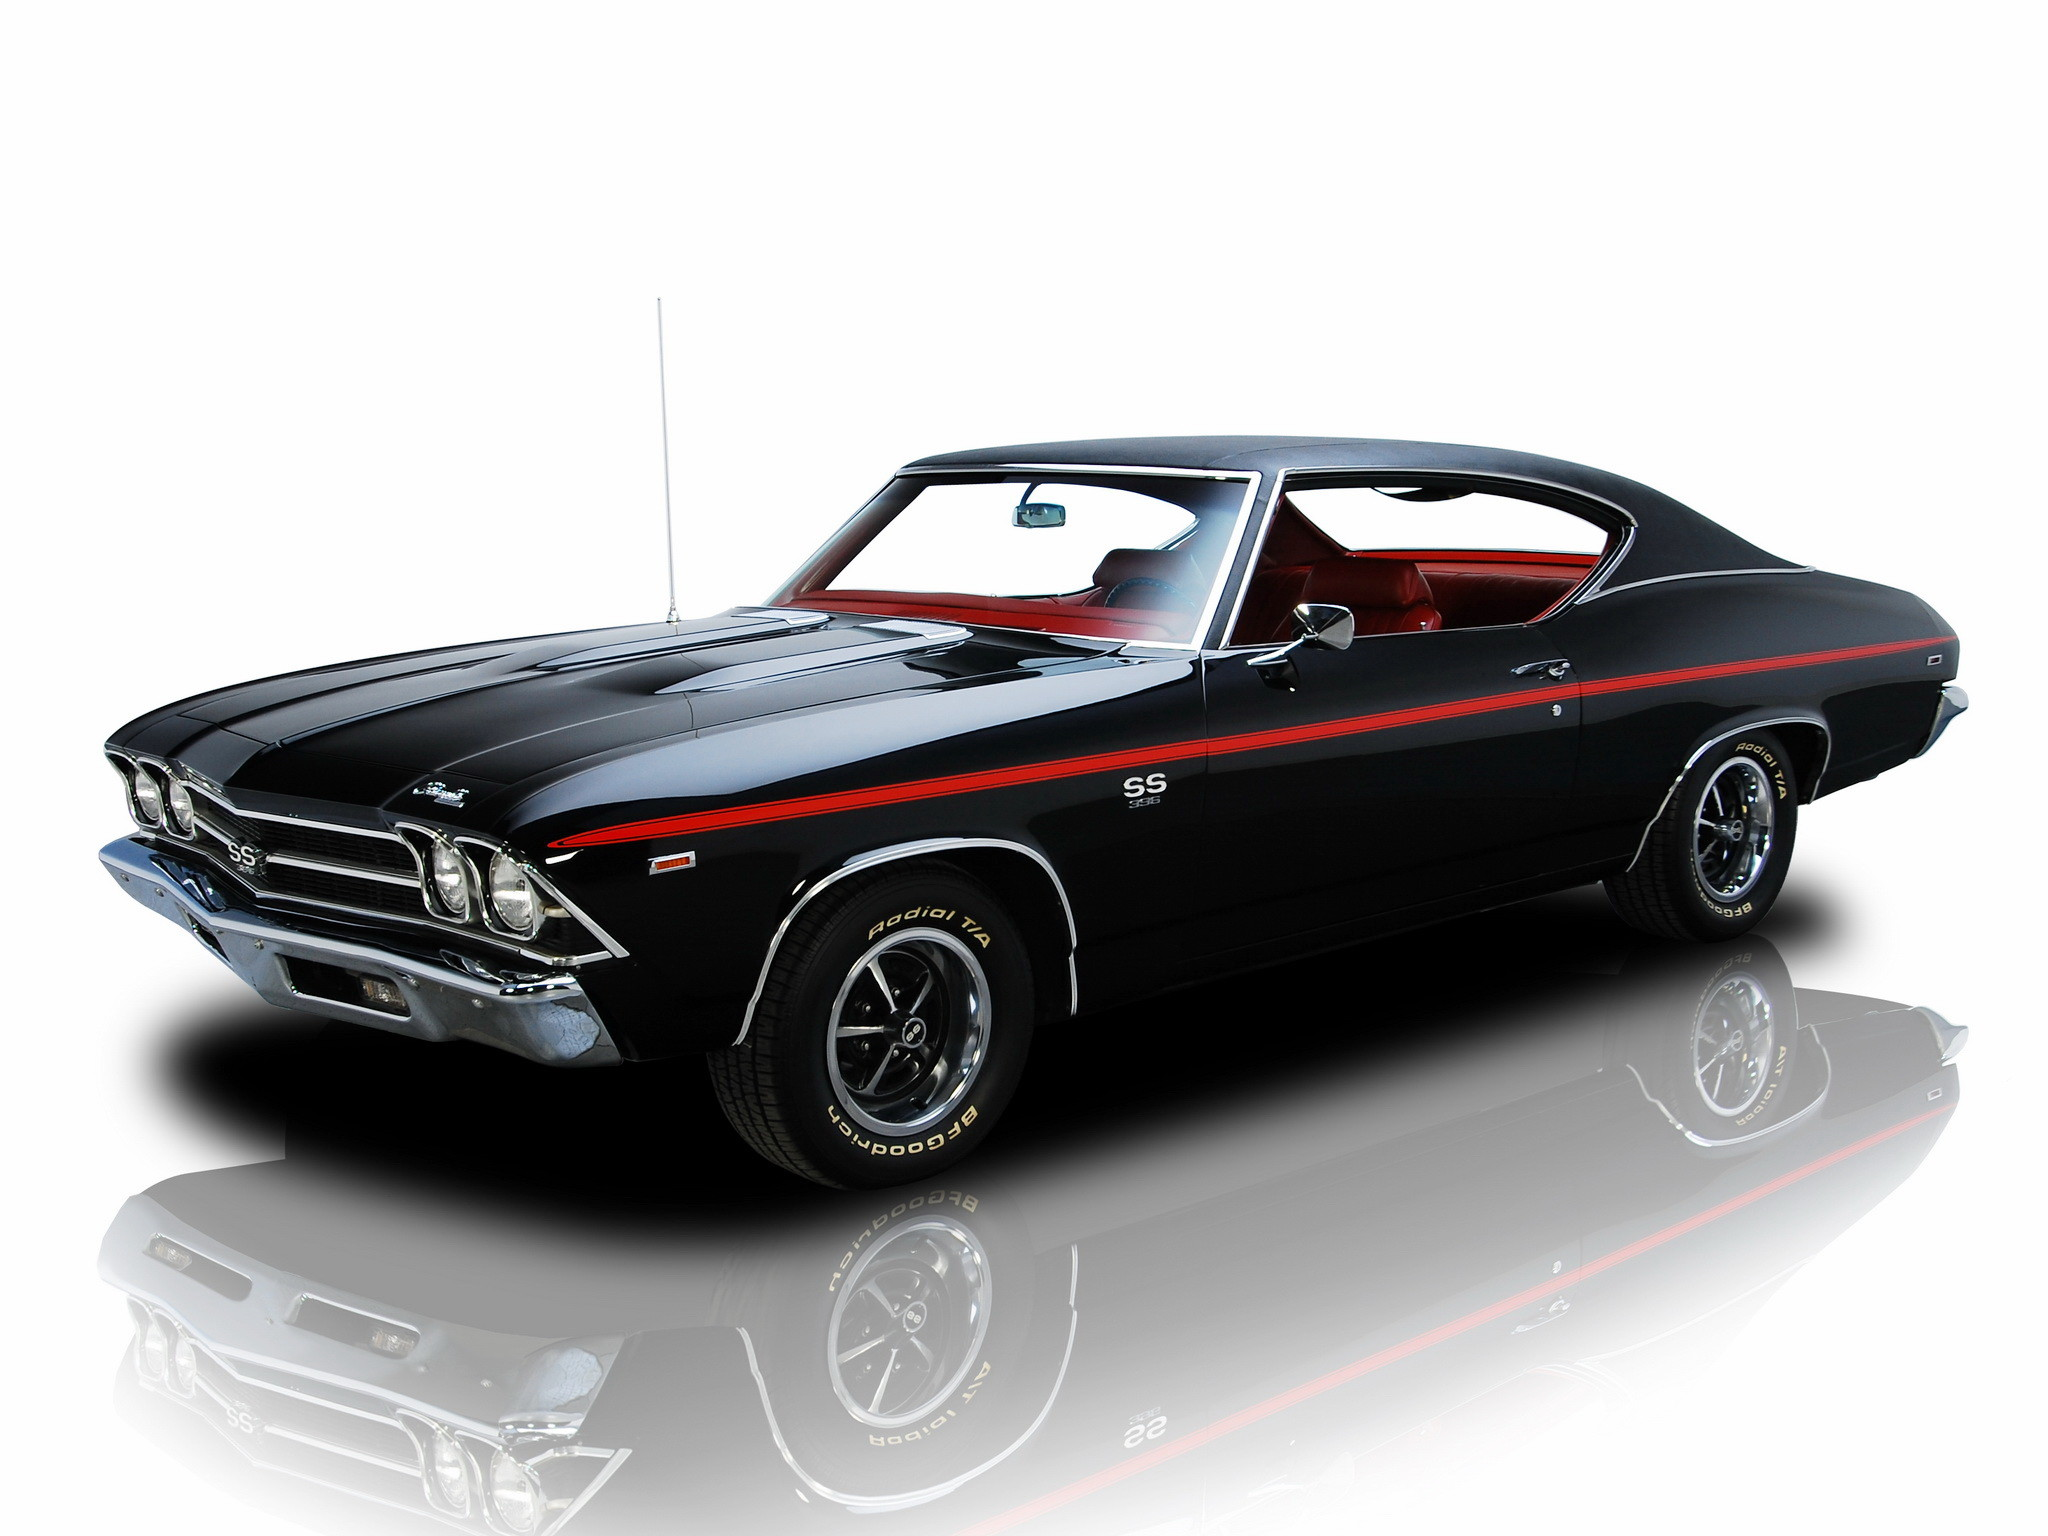 69 chevelle wallpaper 54 images - 69 chevelle ss 396 images ...